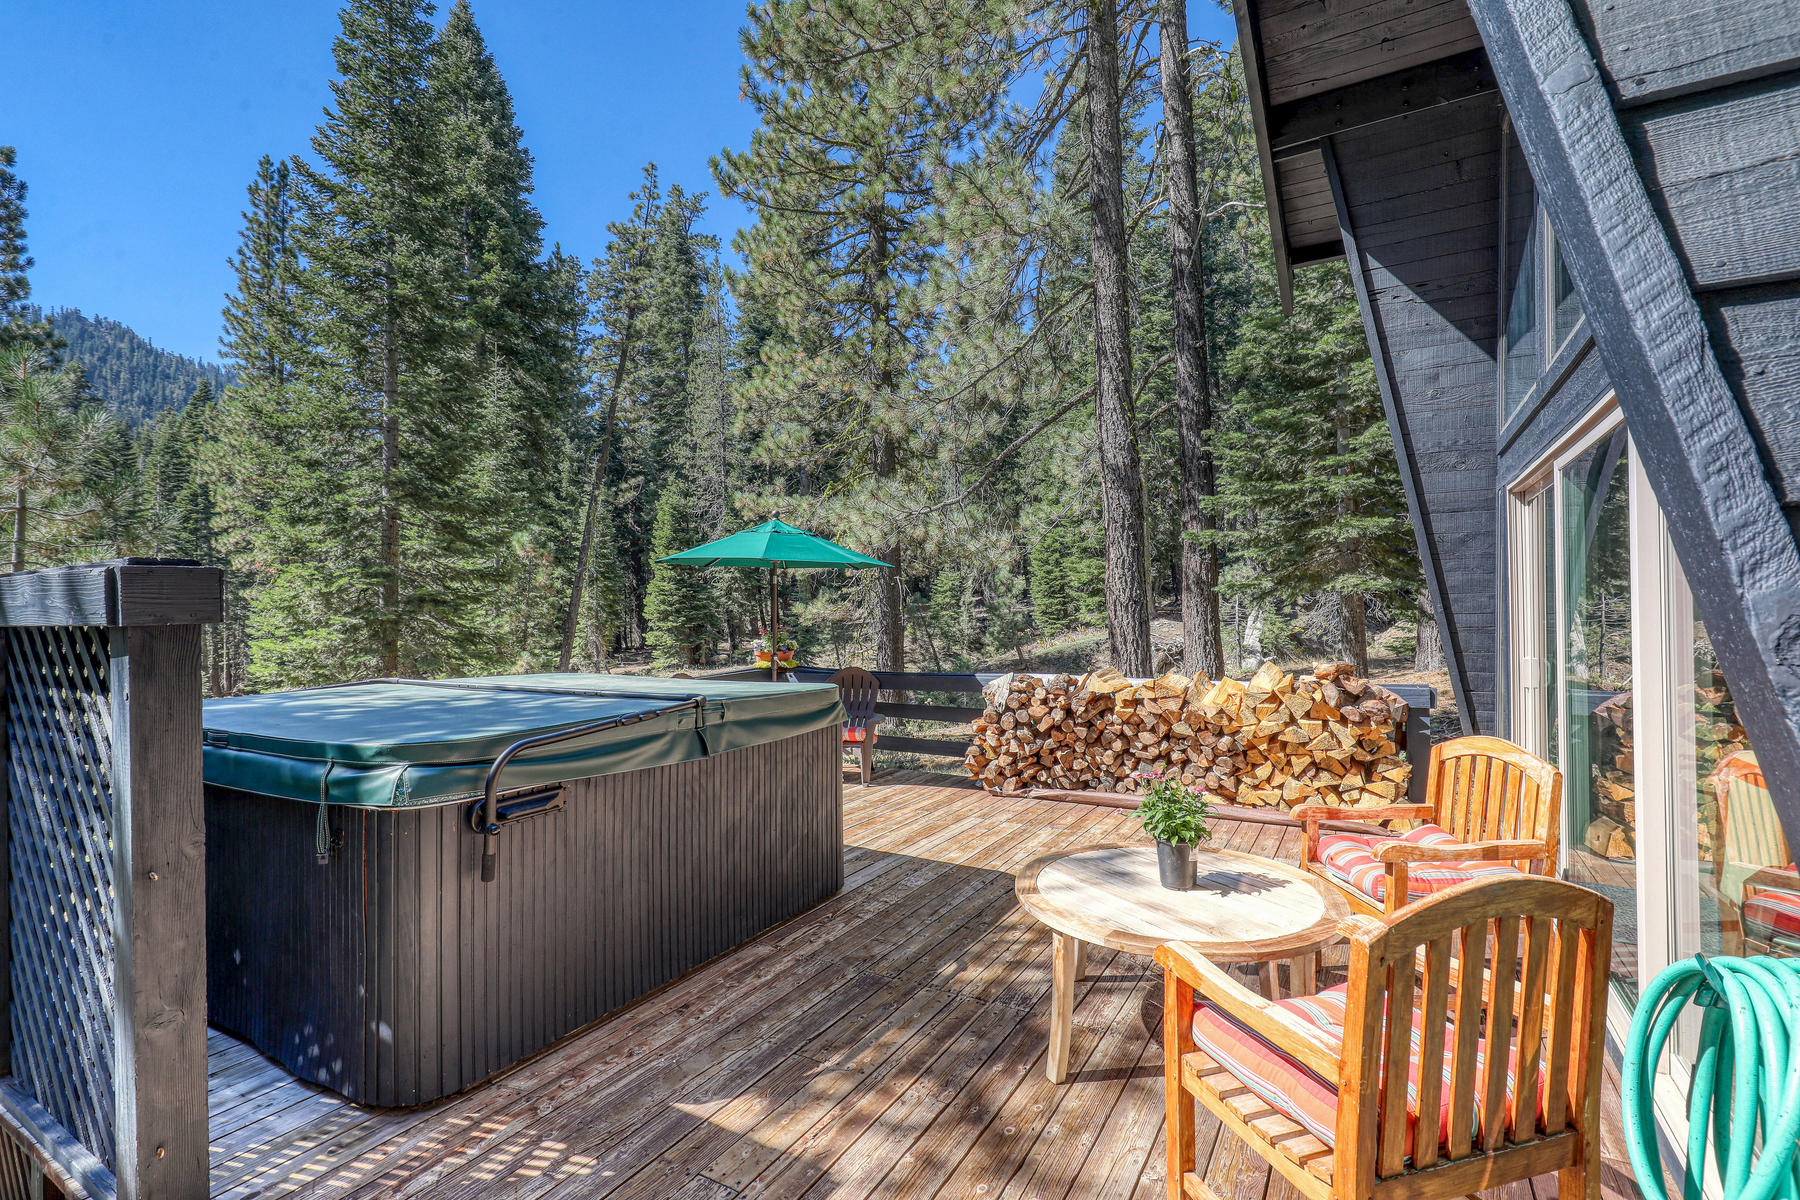 Single Family Homes for Active at Stylish Alpine Meadows Chalet 1825 Deer Park Drive Alpine Meadows, California 96146 United States